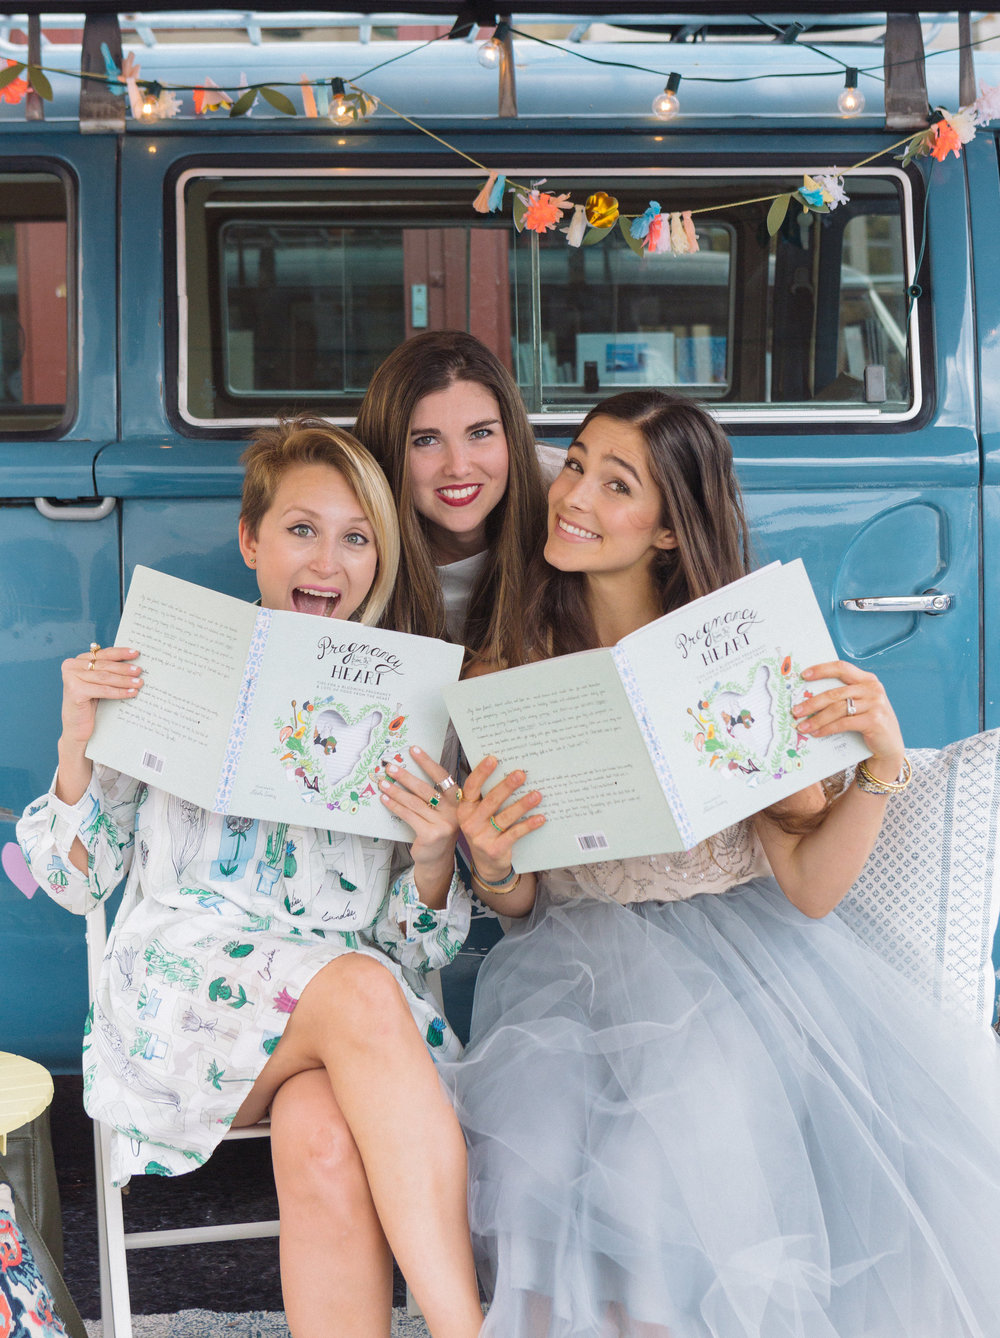 The day of our book Launch Valerie, Daniela and I - Missing Nati Swarz :(